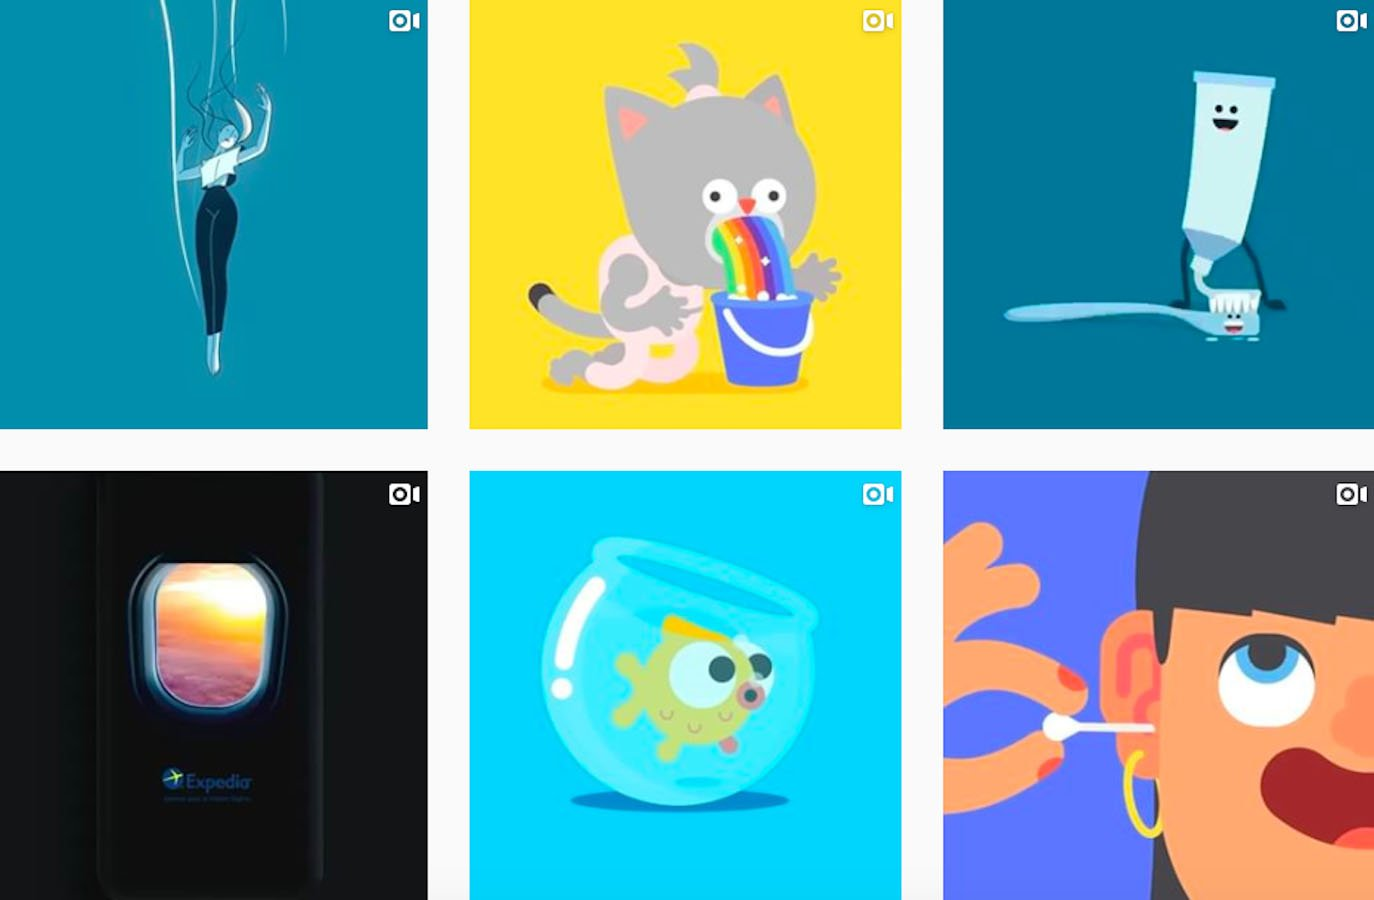 Web Design Inspiration: 110+ Accounts On Instagram and 10+ Best UX & Web Design Books in 2020 - uiuxgifs